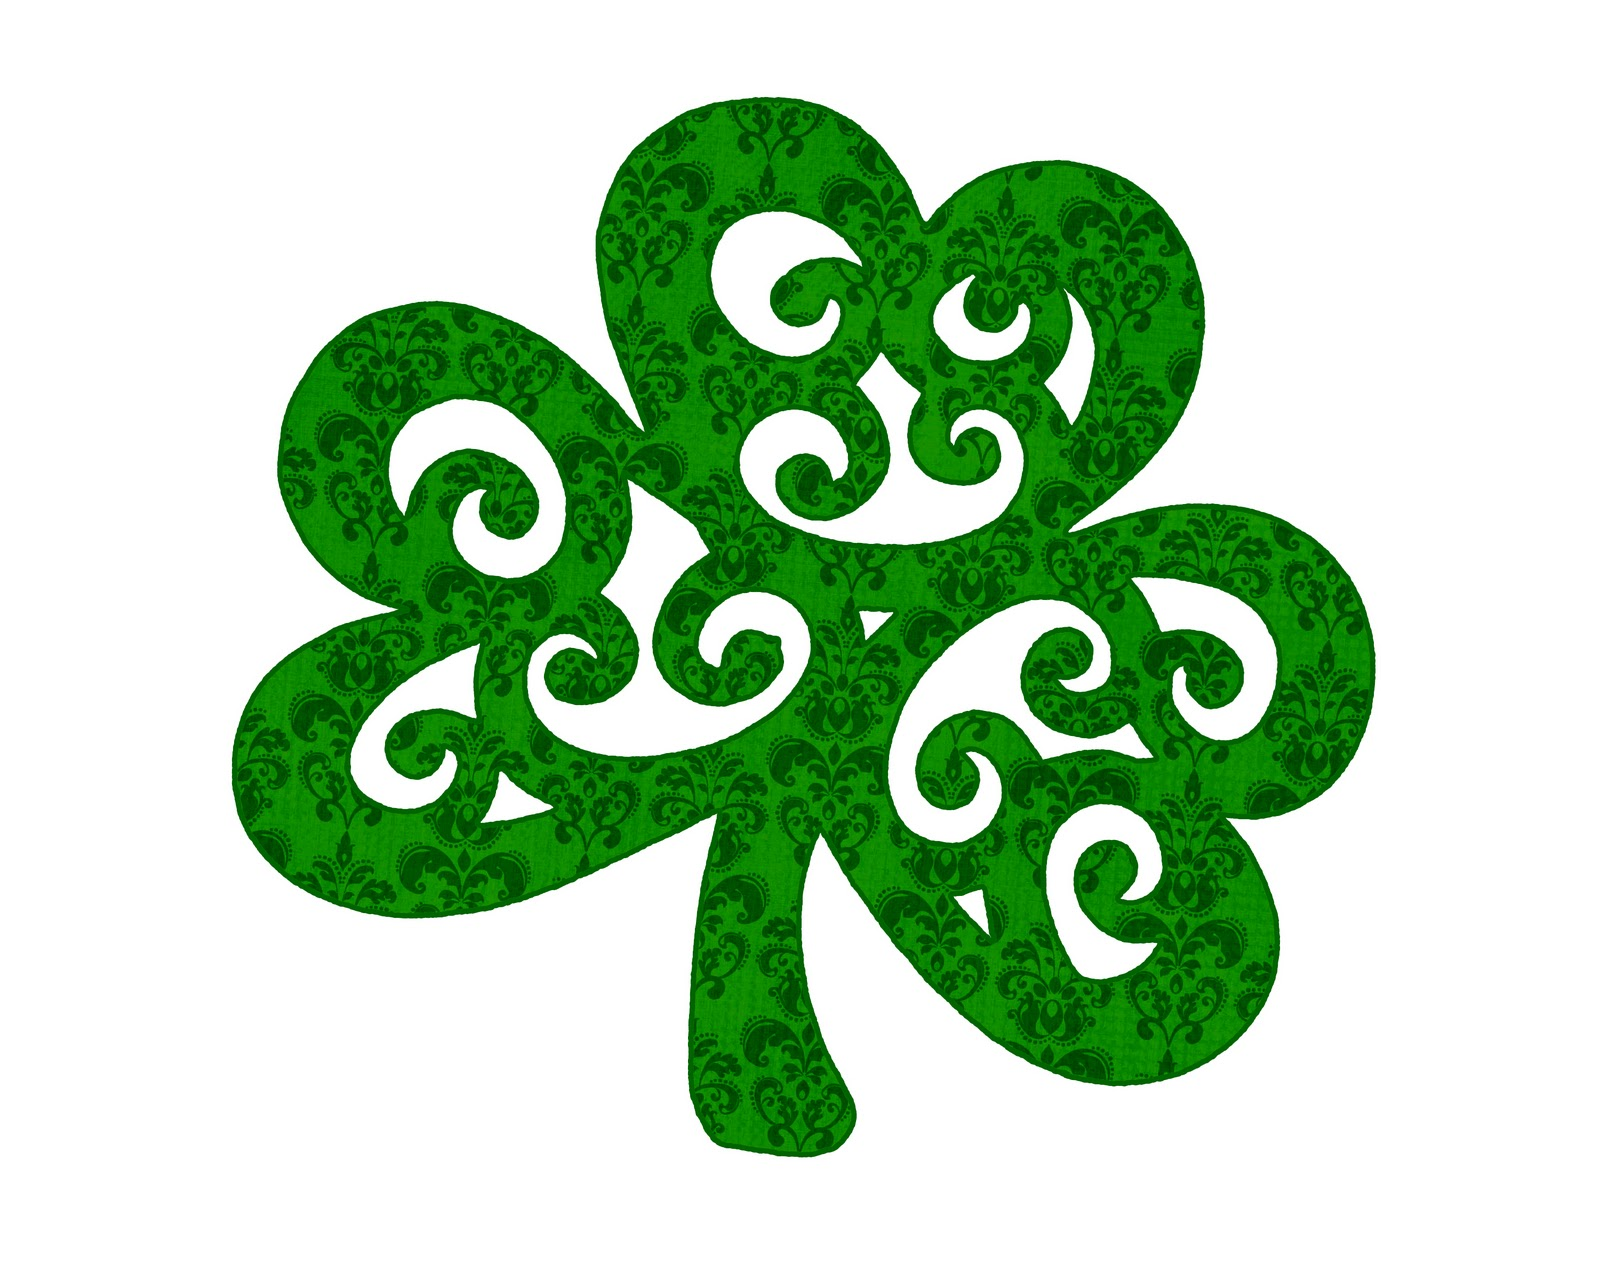 Green On St  Patrick S Day Symbolizes The Patron Saint And National